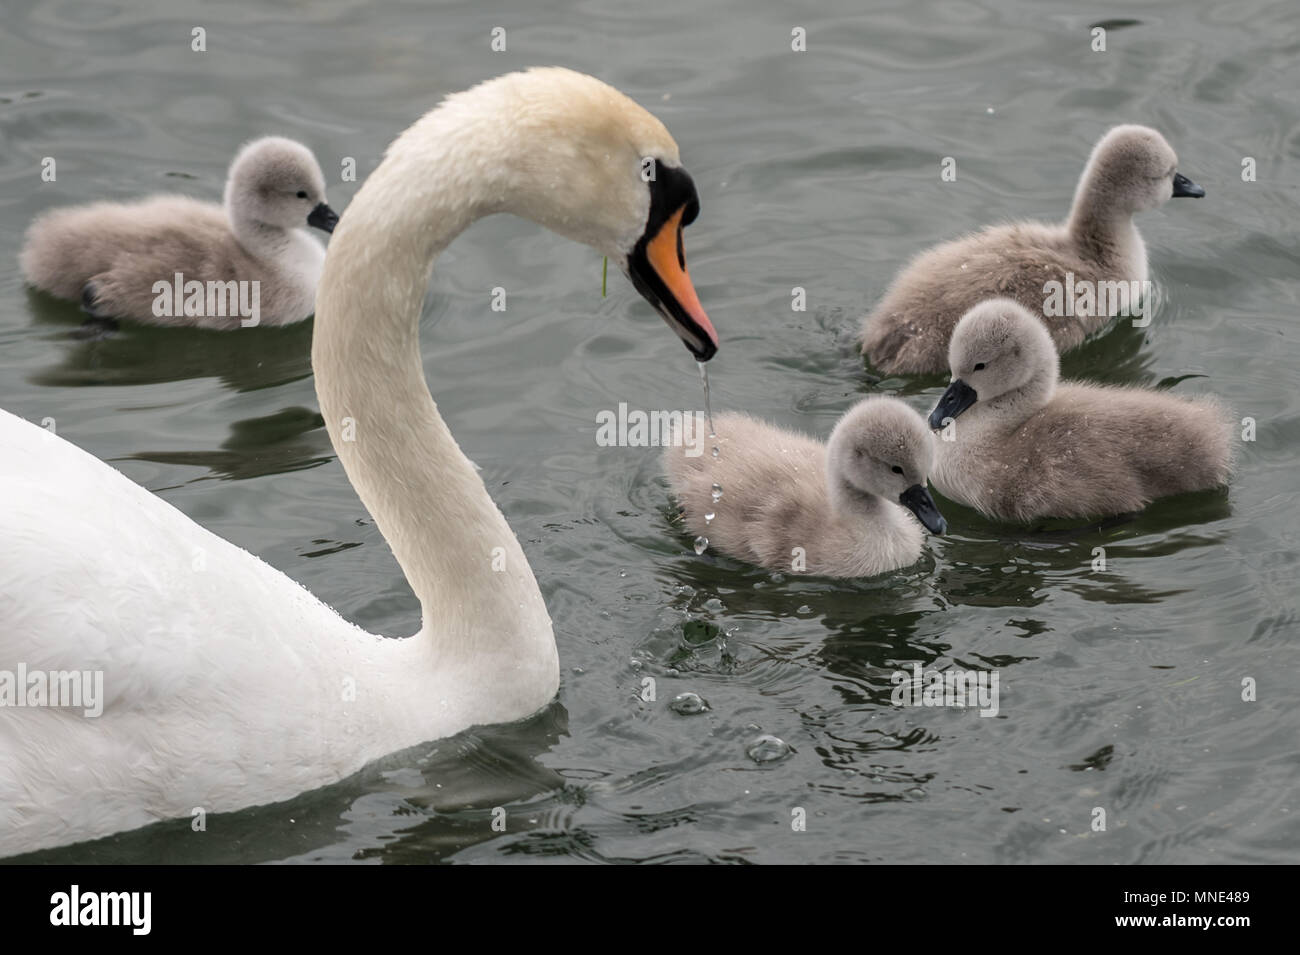 London, UK. 16th May, 2018. Newly hatched mute swan cygnet take a swim with their mother on Canada Water pond © Guy Corbishley/Alamy Live News - Stock Image